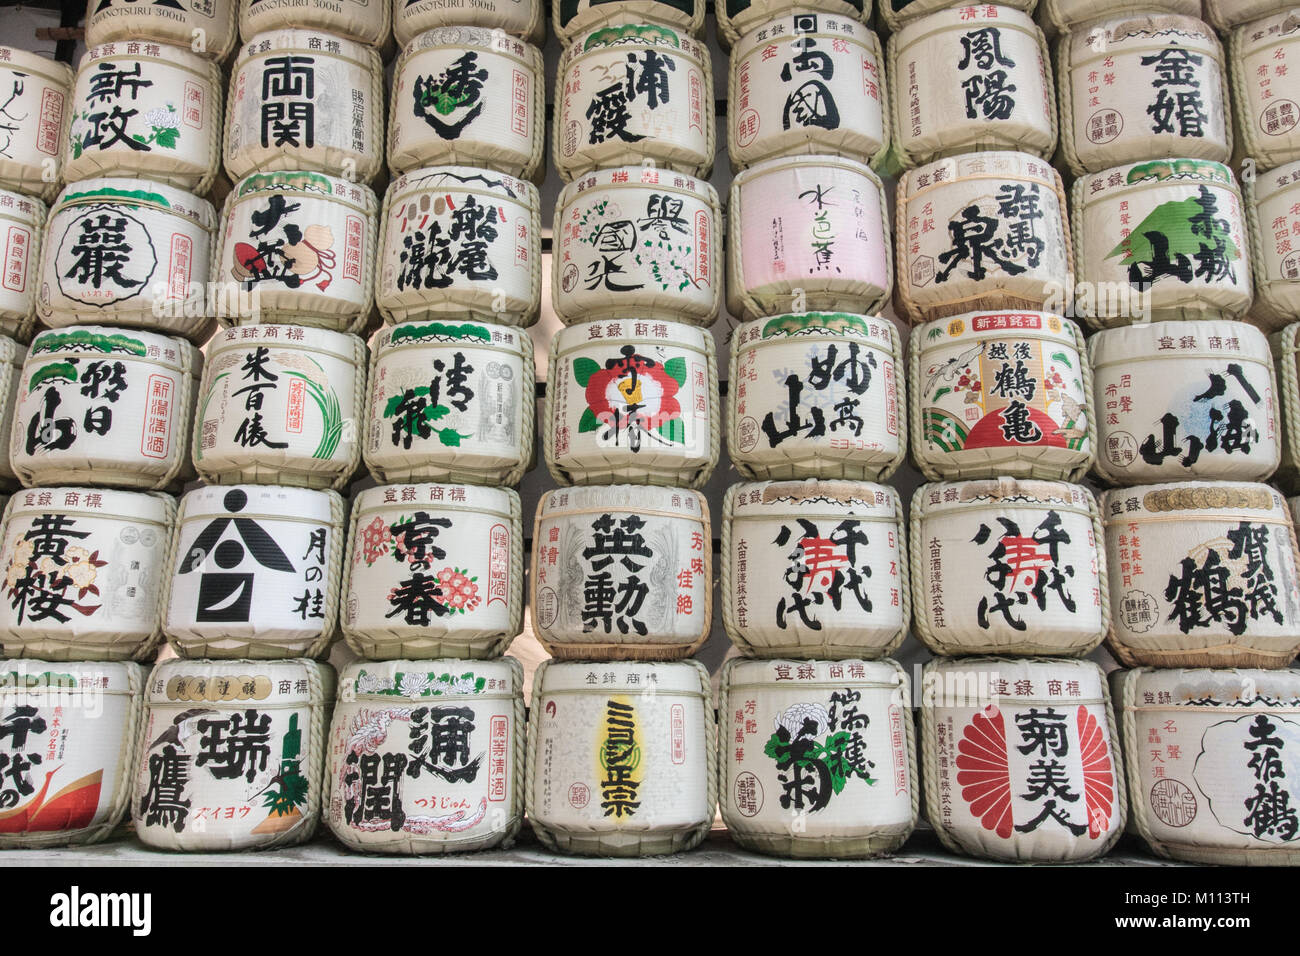 Barrels of sake wrapped in straw Stock Photo